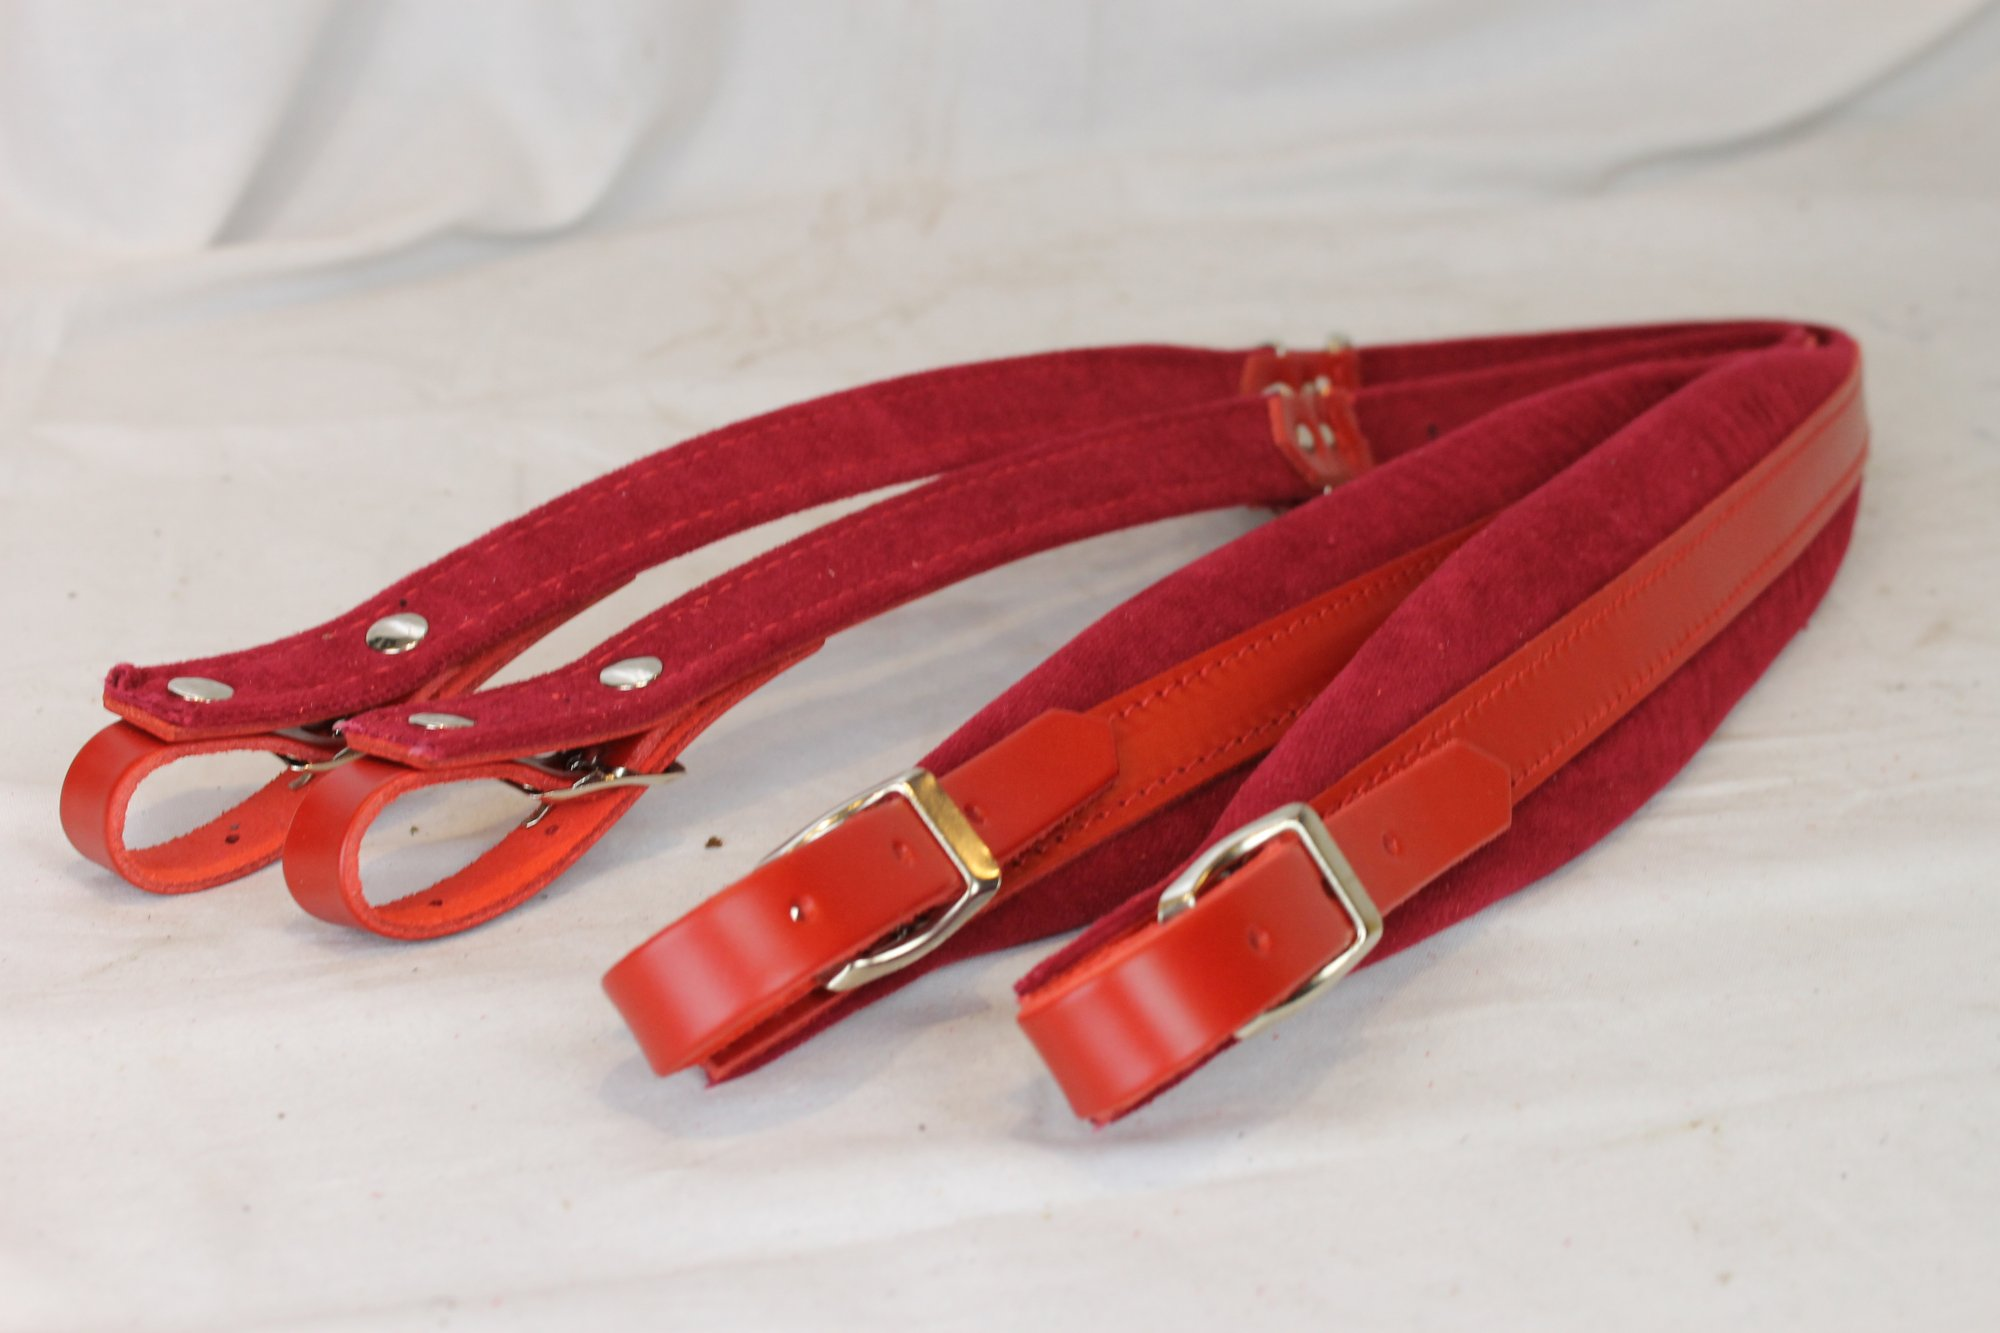 New Red Leather Velour Fuselli Accordion Shoulder Straps Width (6cm / 2.4in) Length (91~111cm / 35.8~43.7in)